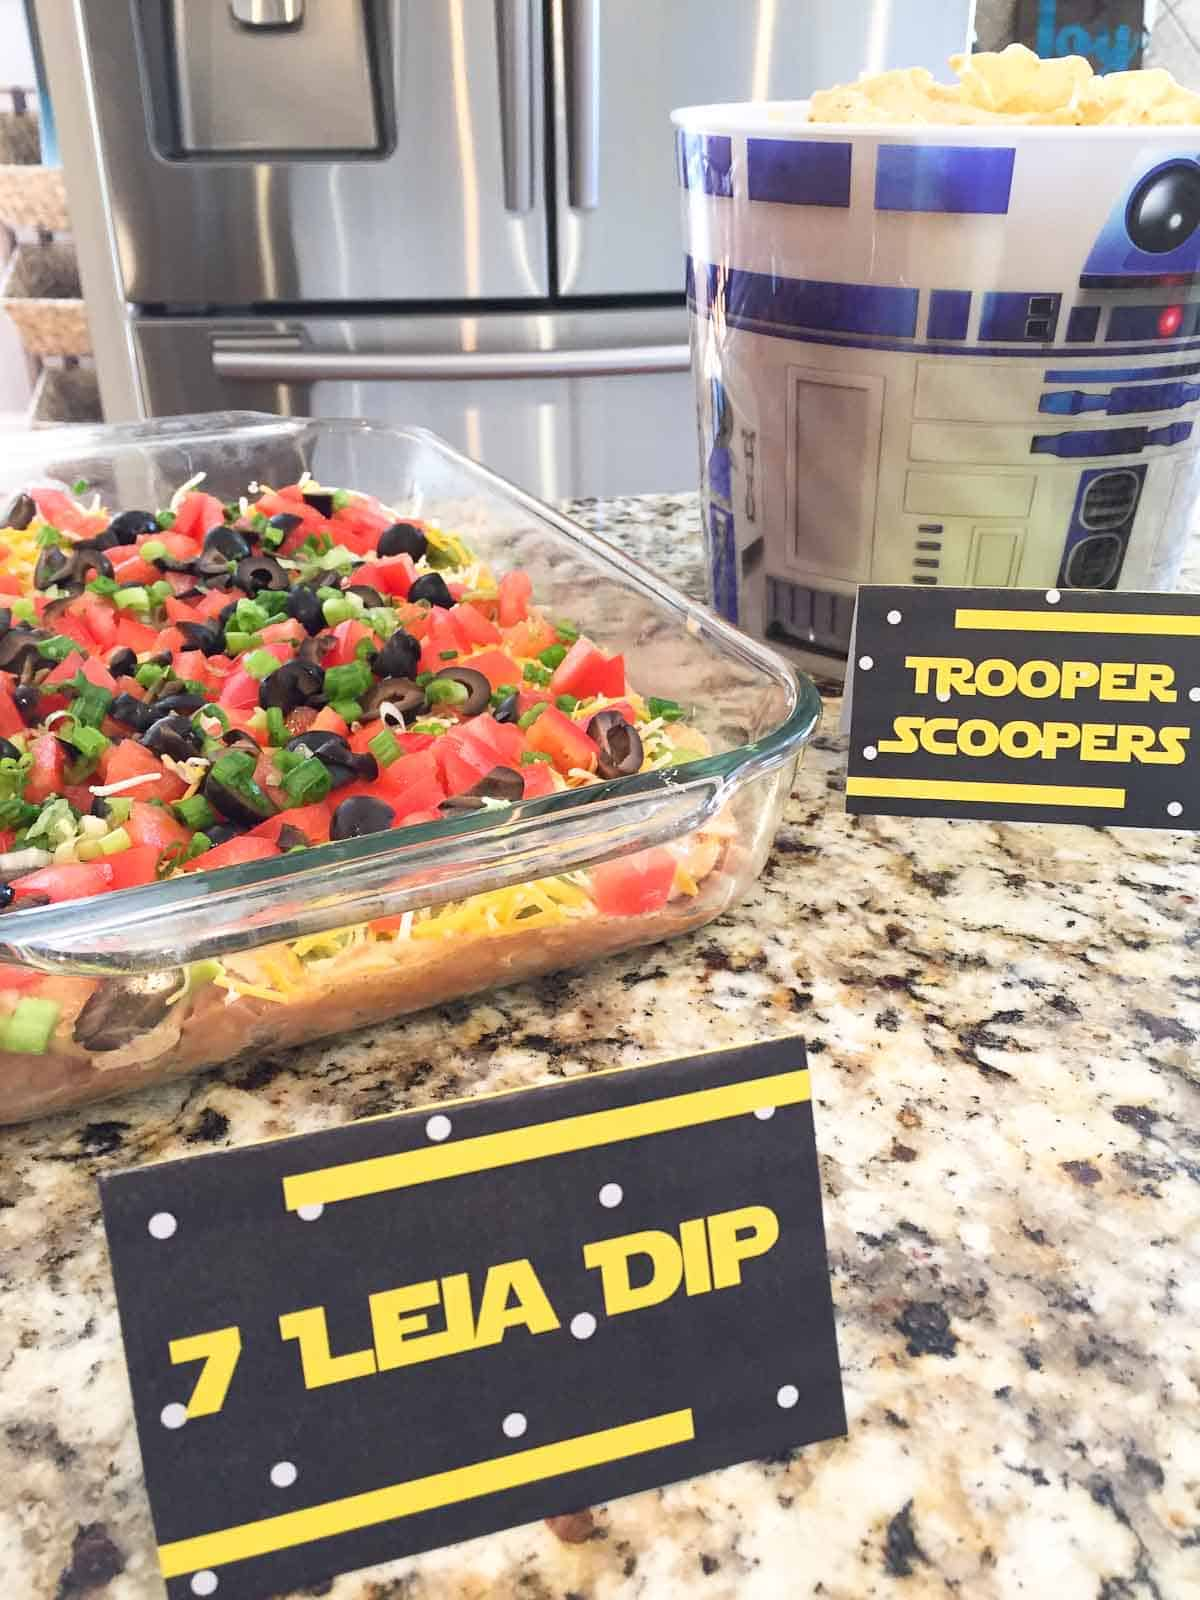 star wars recipe for 7 leia dip and trooper scoopers